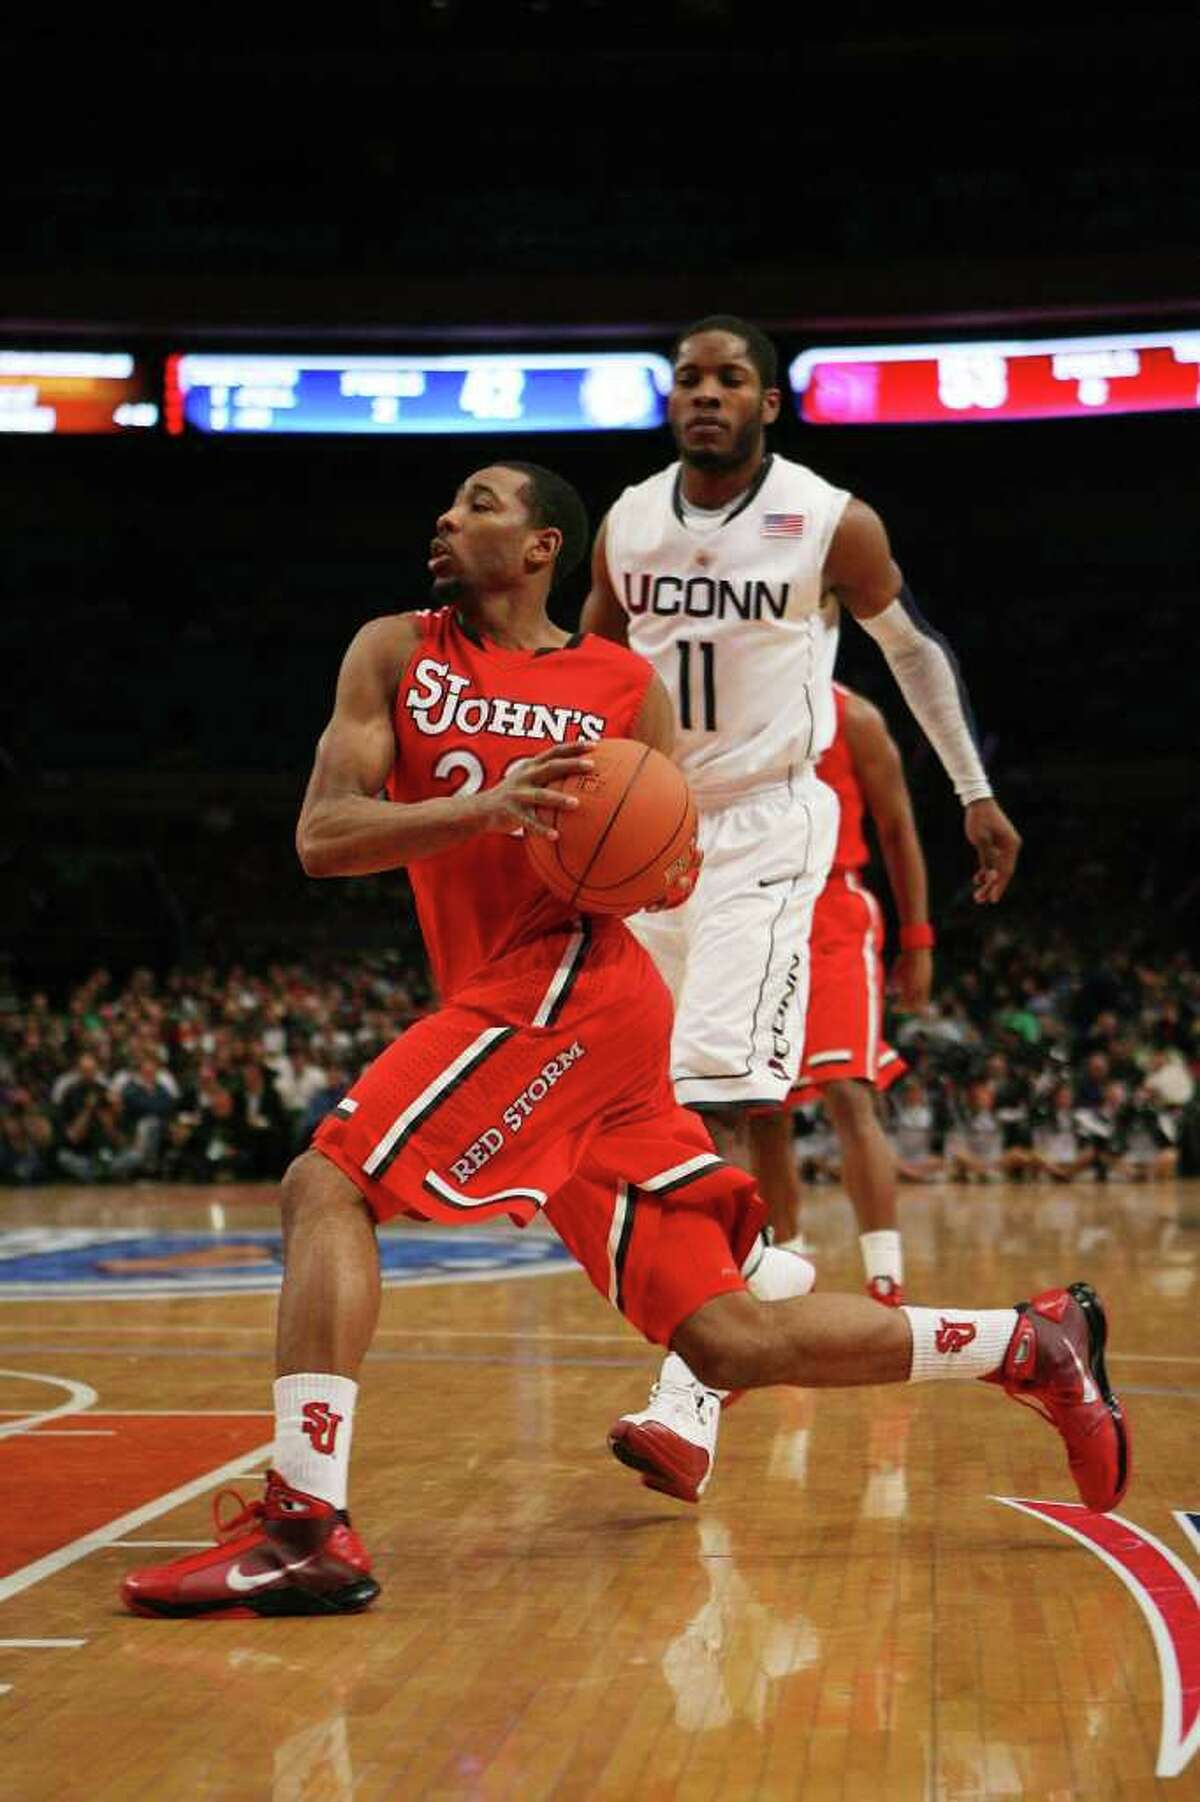 NEW YORK - MARCH 09: Paris Horne #23 of the St. John's Red Storm drives past Jerome Tyson #11 the Connecticut Huskies at Madison Square Garden on March 9, 2010 in New York, New York. The Red Storm defeated the Huskies 73-51. (Photo by Chris Trotman/Getty Images) *** Local Caption *** Paris Horne;Jerome Tyson